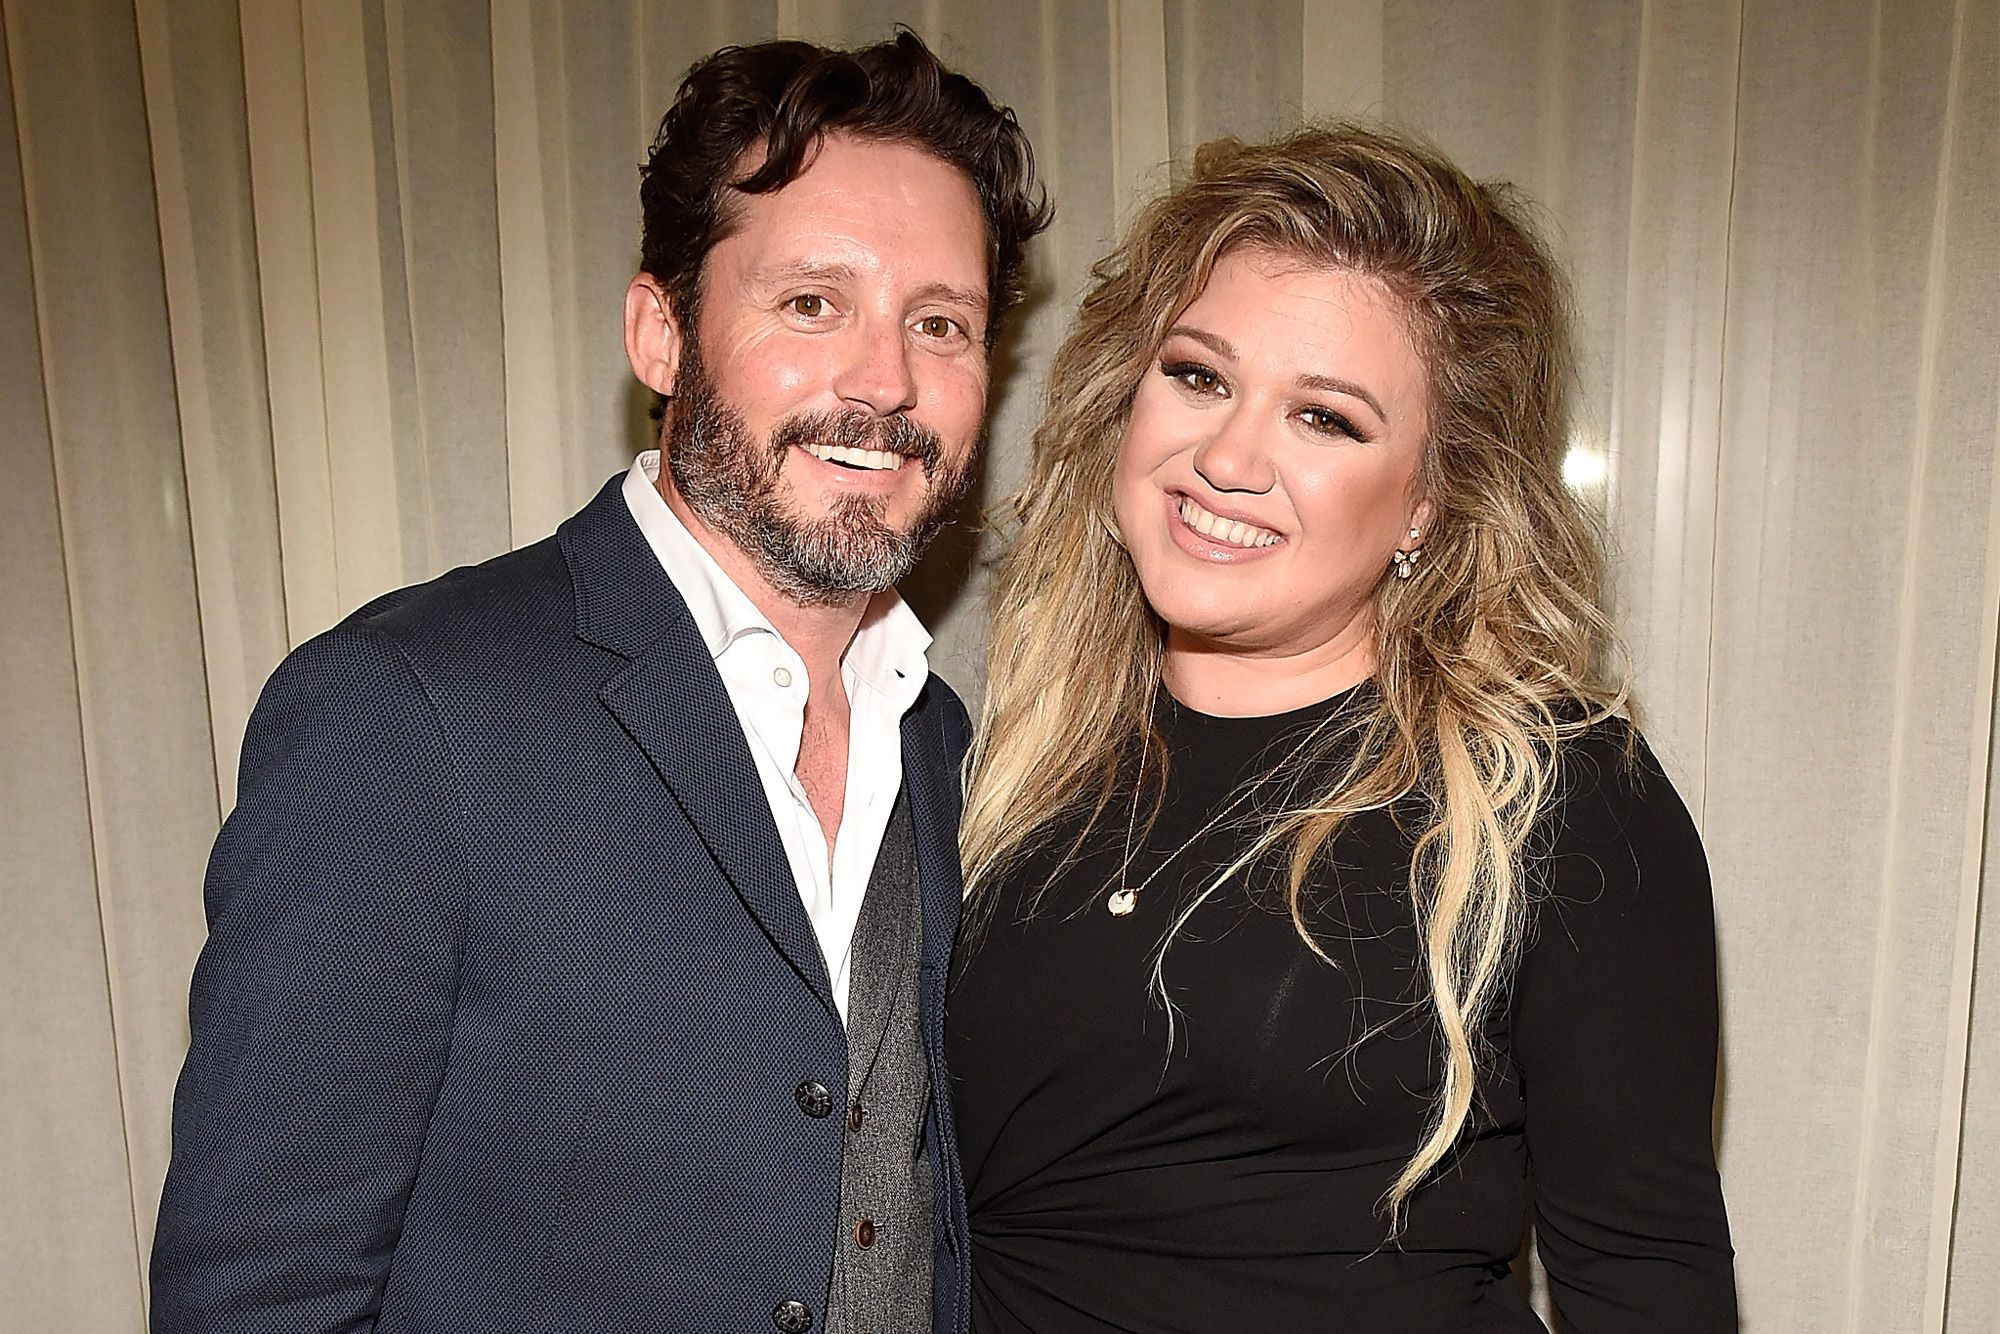 """kelly-clarkson-keeps-it-real-with-harsh-dating-advice-for-fan-amid-brandon-blackstock-divorce"""